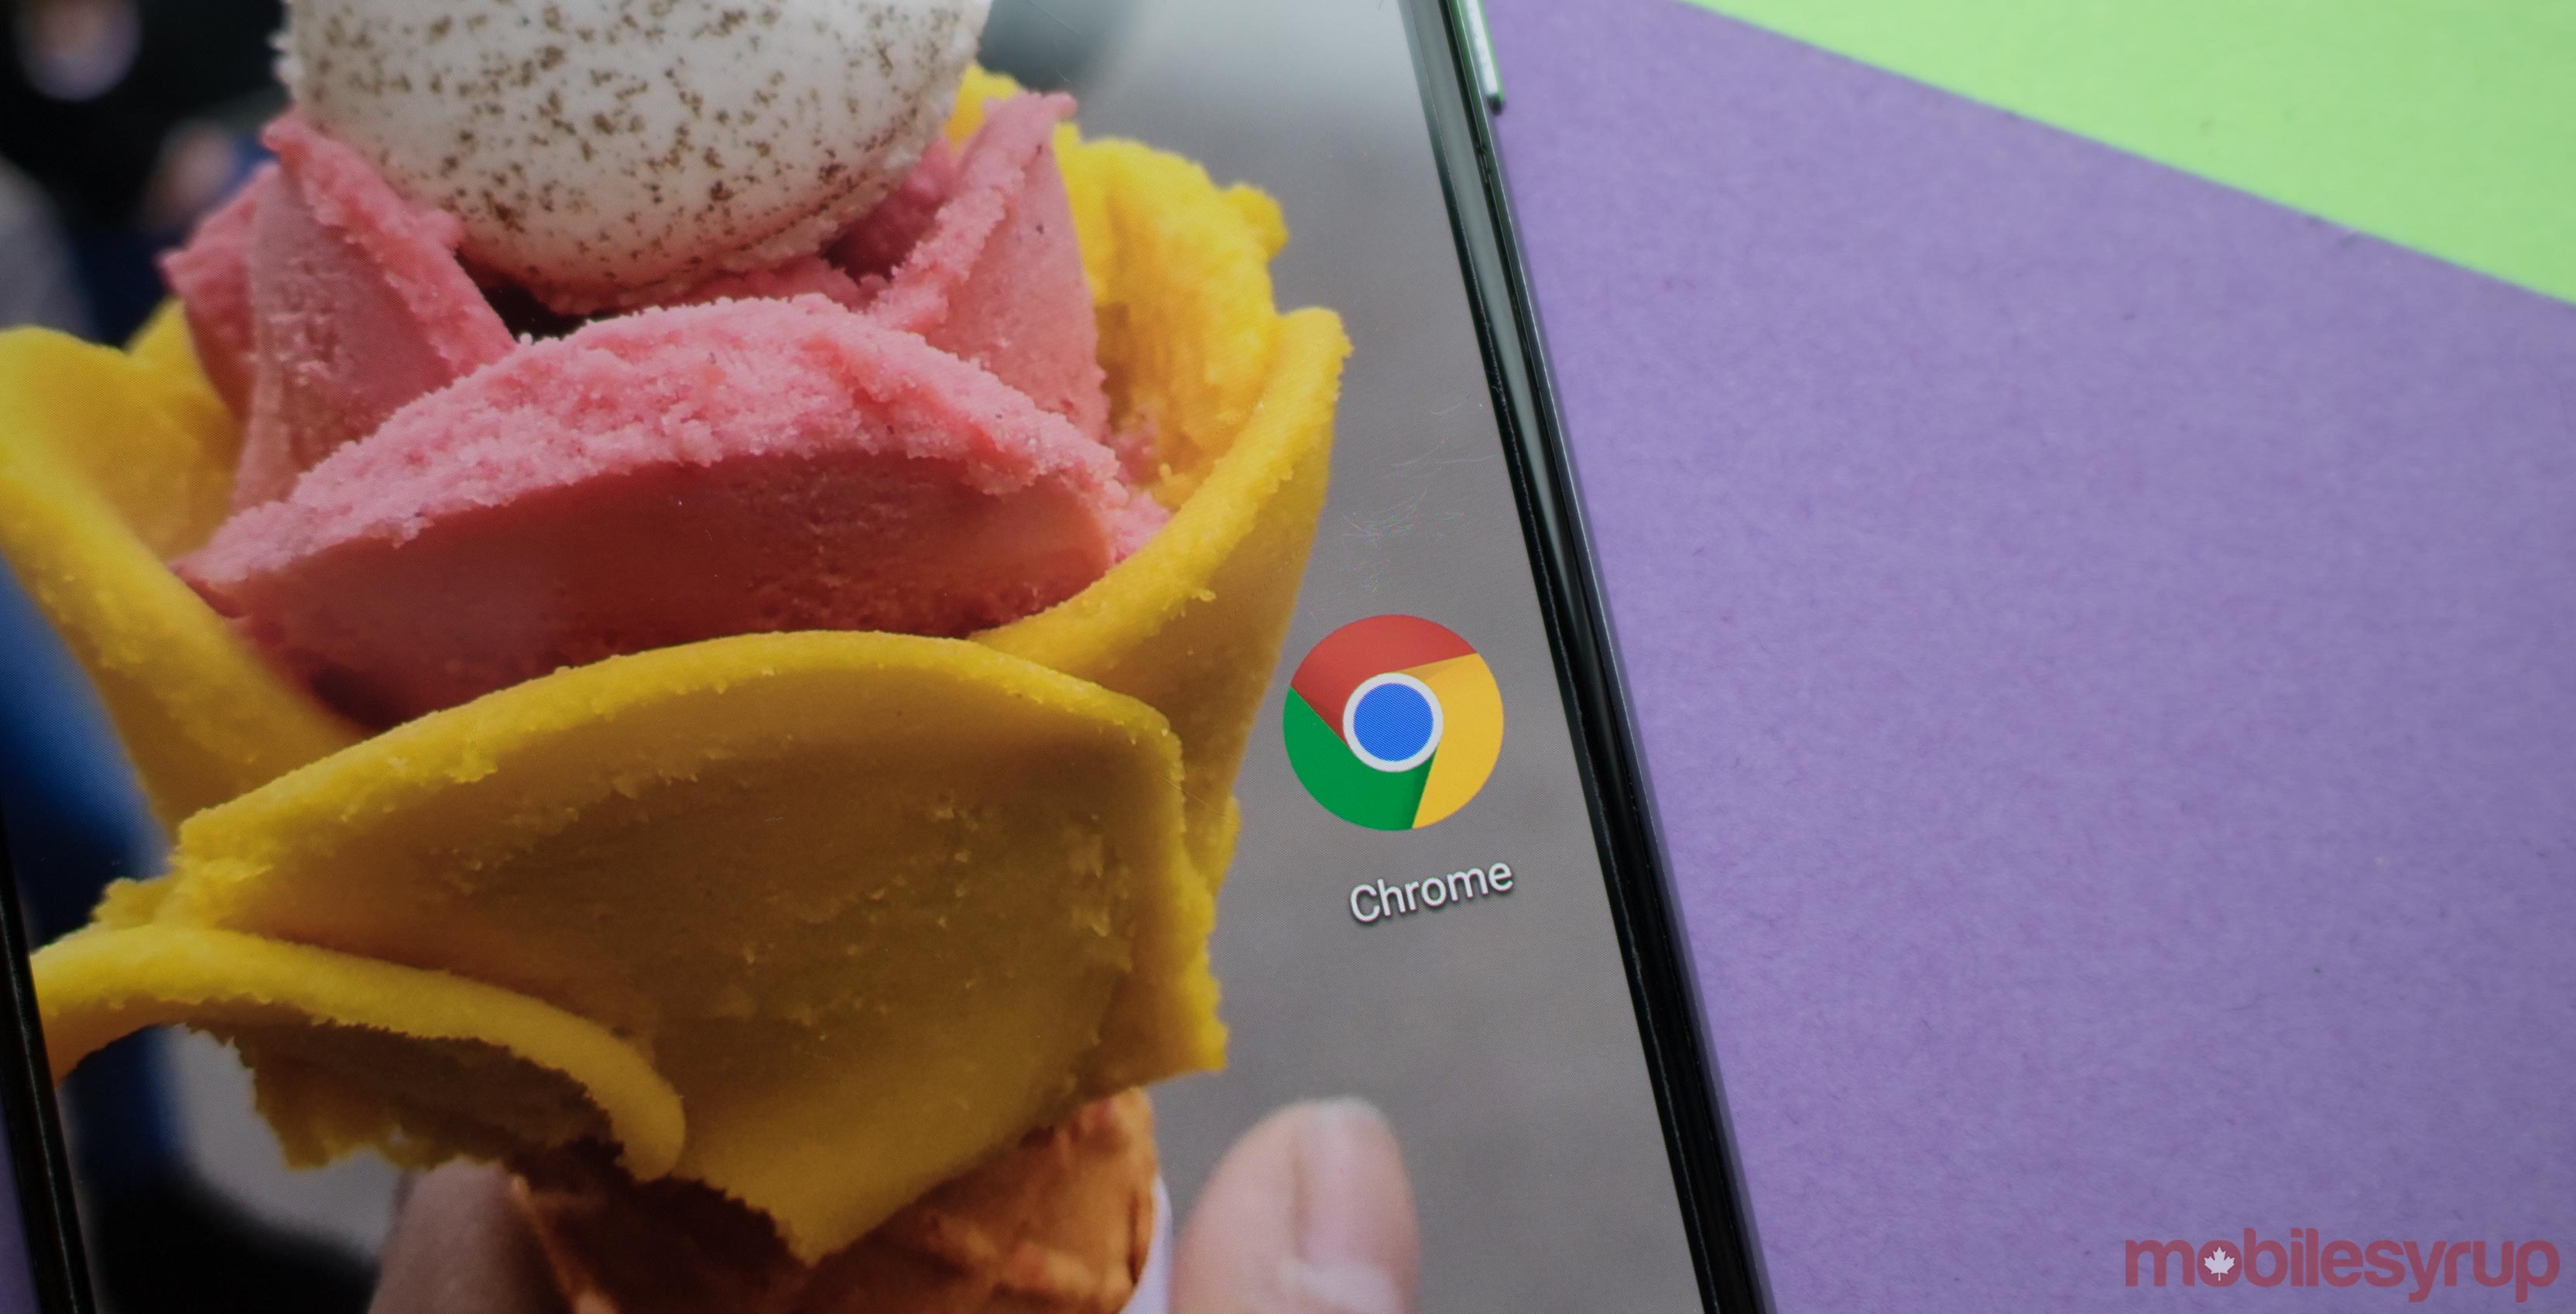 Google Chrome with a gelato